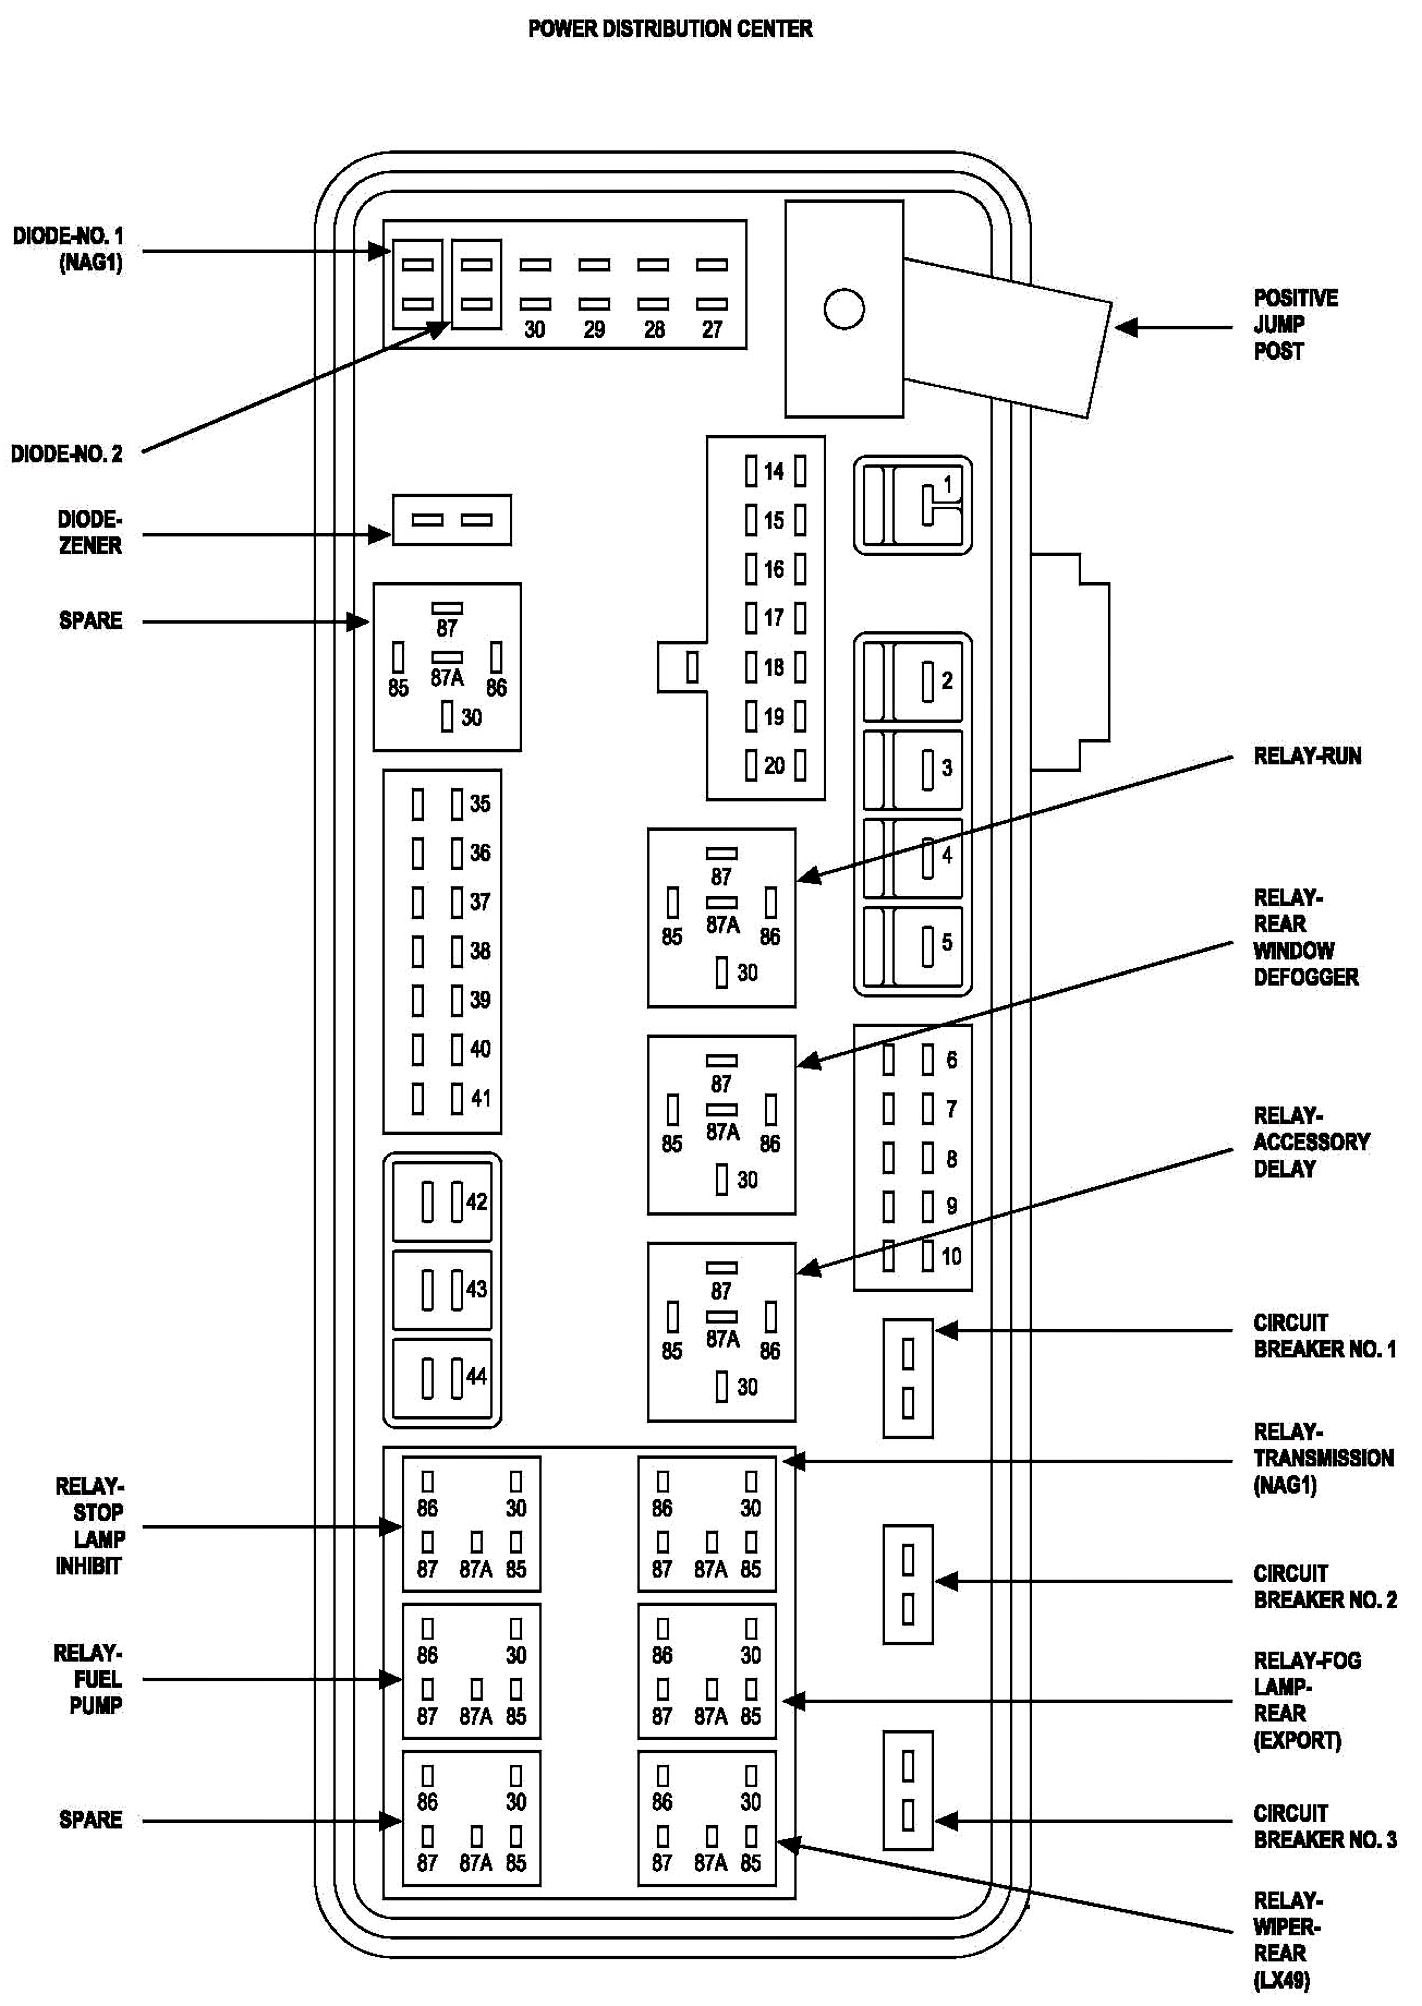 2005 chrysler town and country wiringdiagram JHRgApv 2005 chrysler town and country wiringdiagram image details 2007 chrysler town and country fuse box at mifinder.co